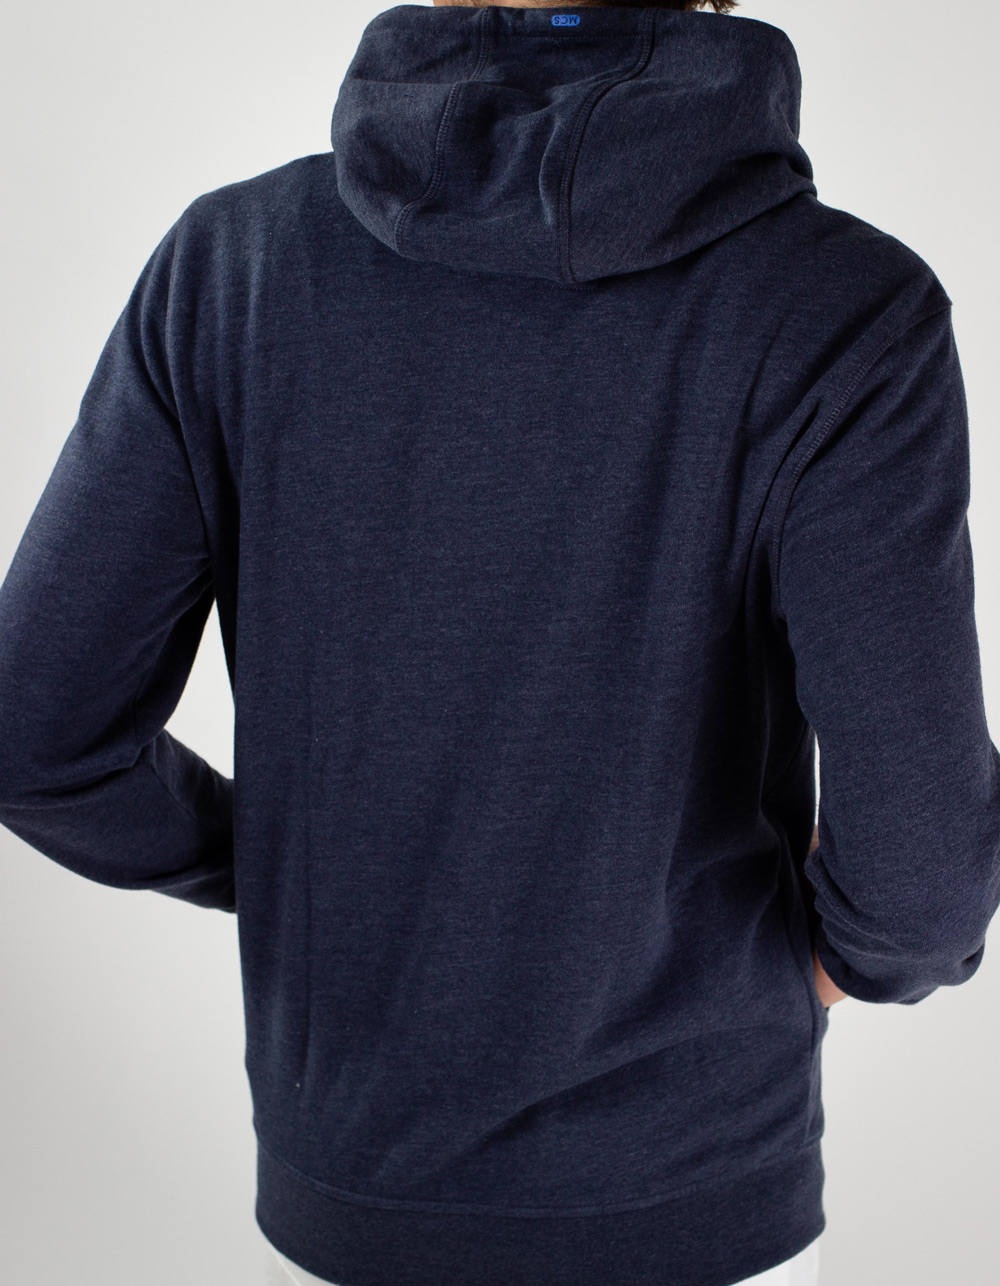 Sudadera NEW HAMPTON marino - Backside